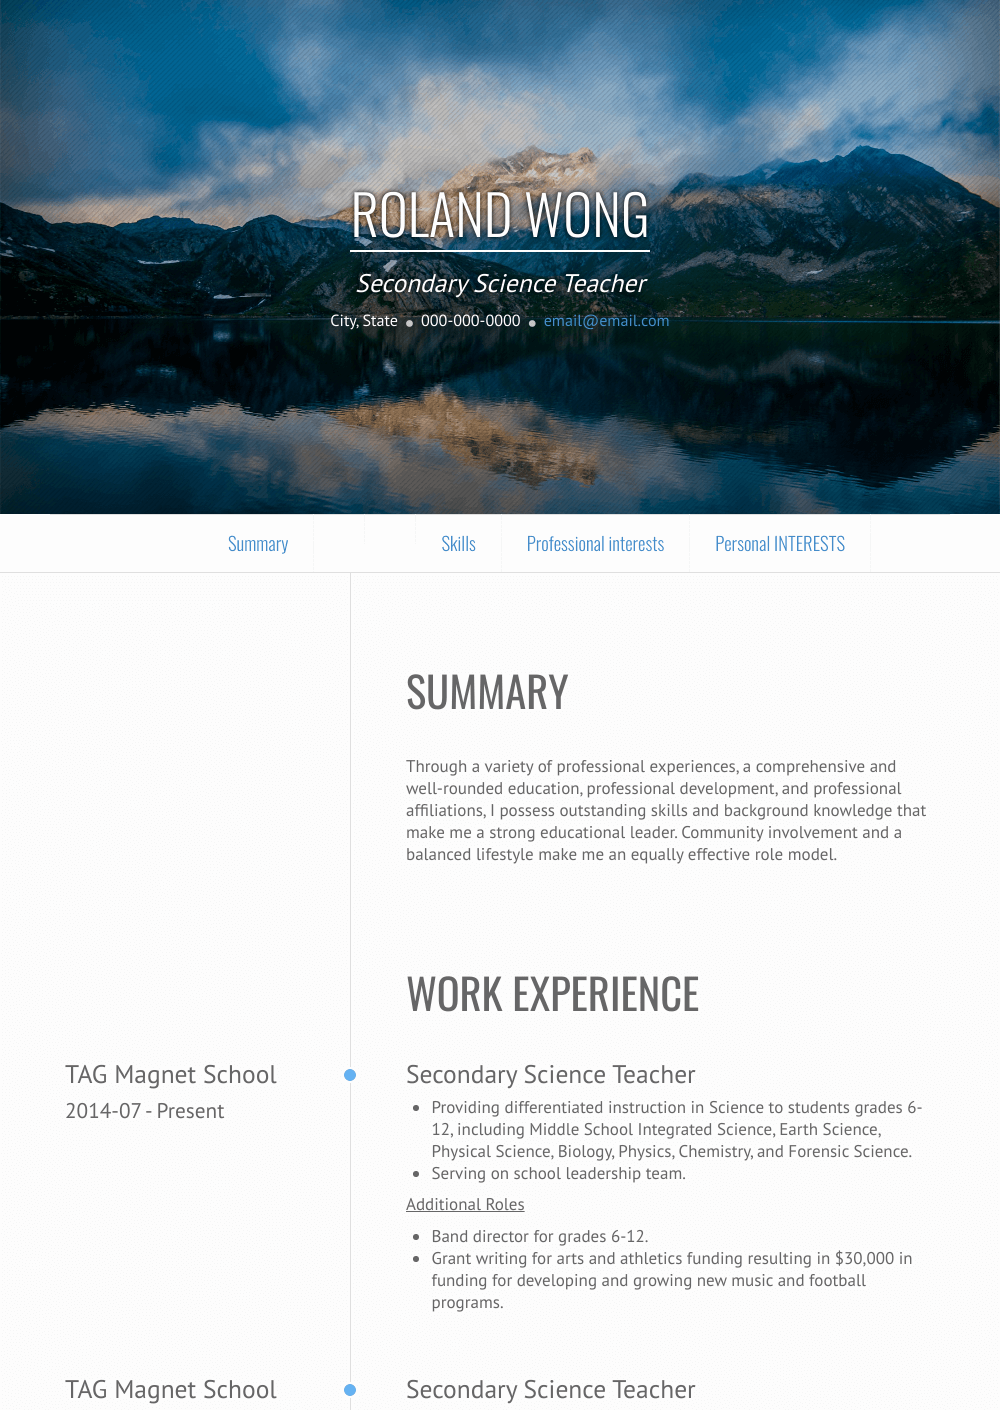 Science Teacher - Resume Samples and Templates | VisualCV